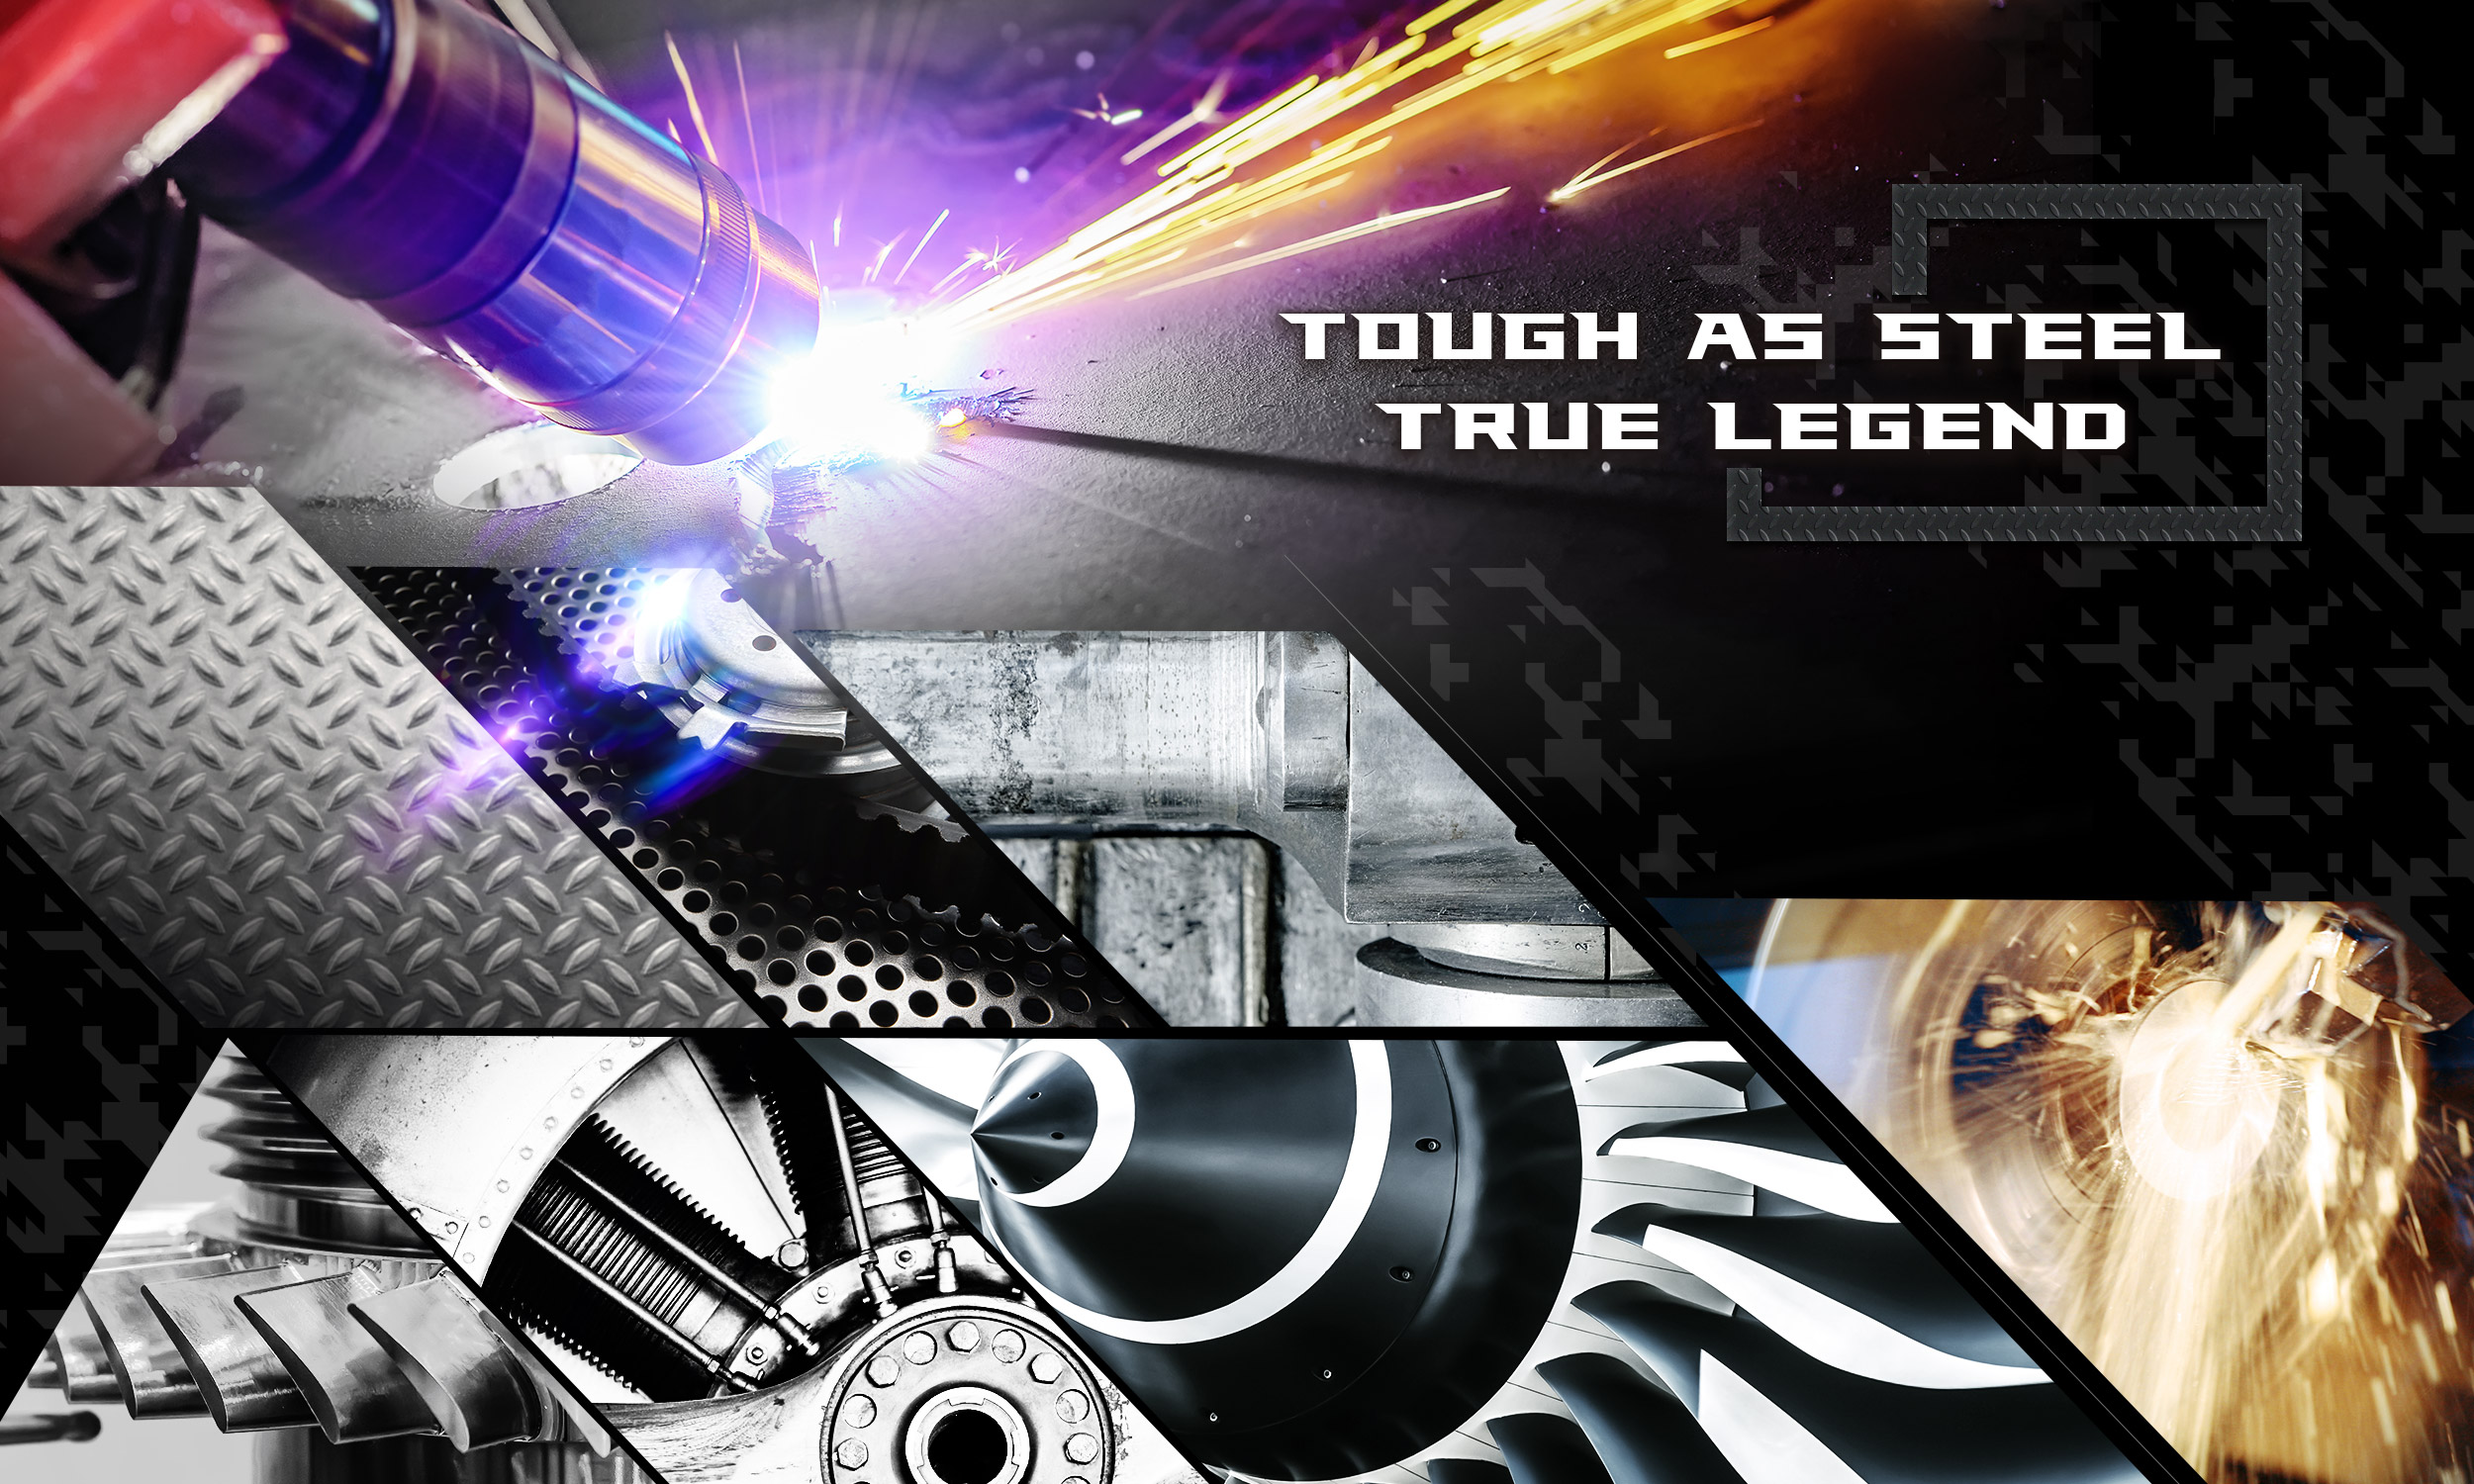 SteelLegend Tough as steel, true legend